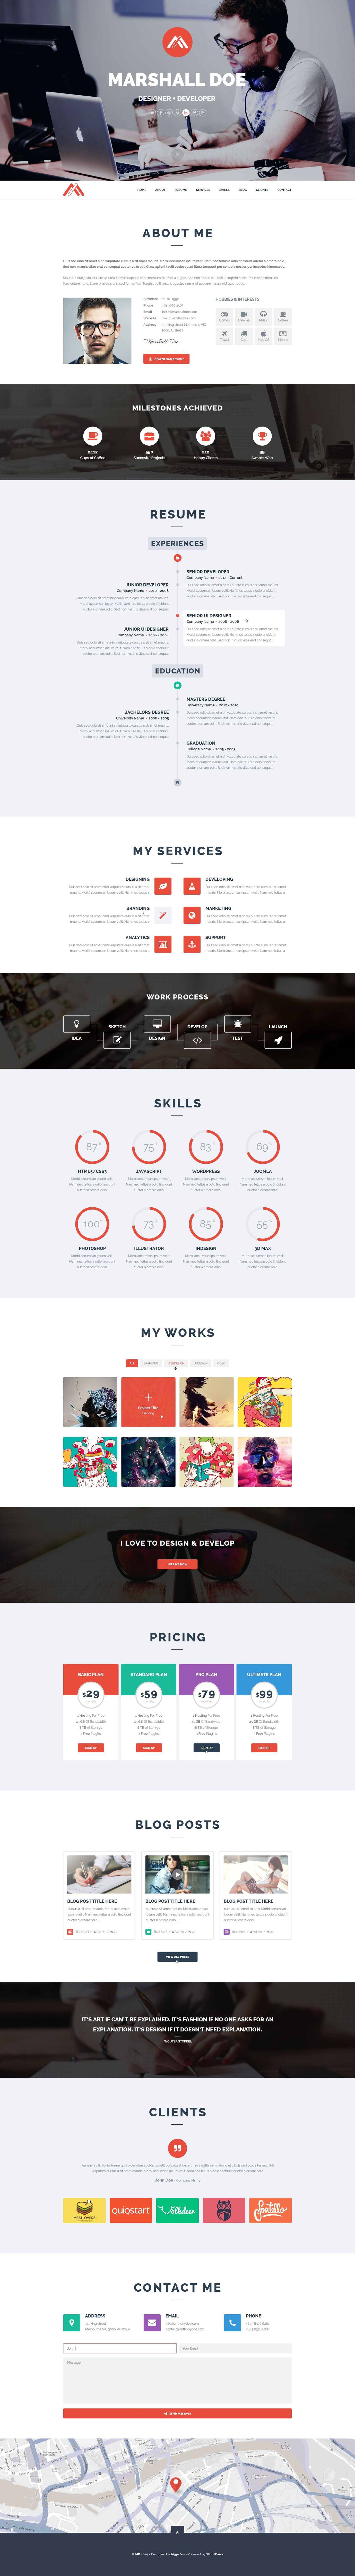 MD is a Single Page personal resume PSD Template